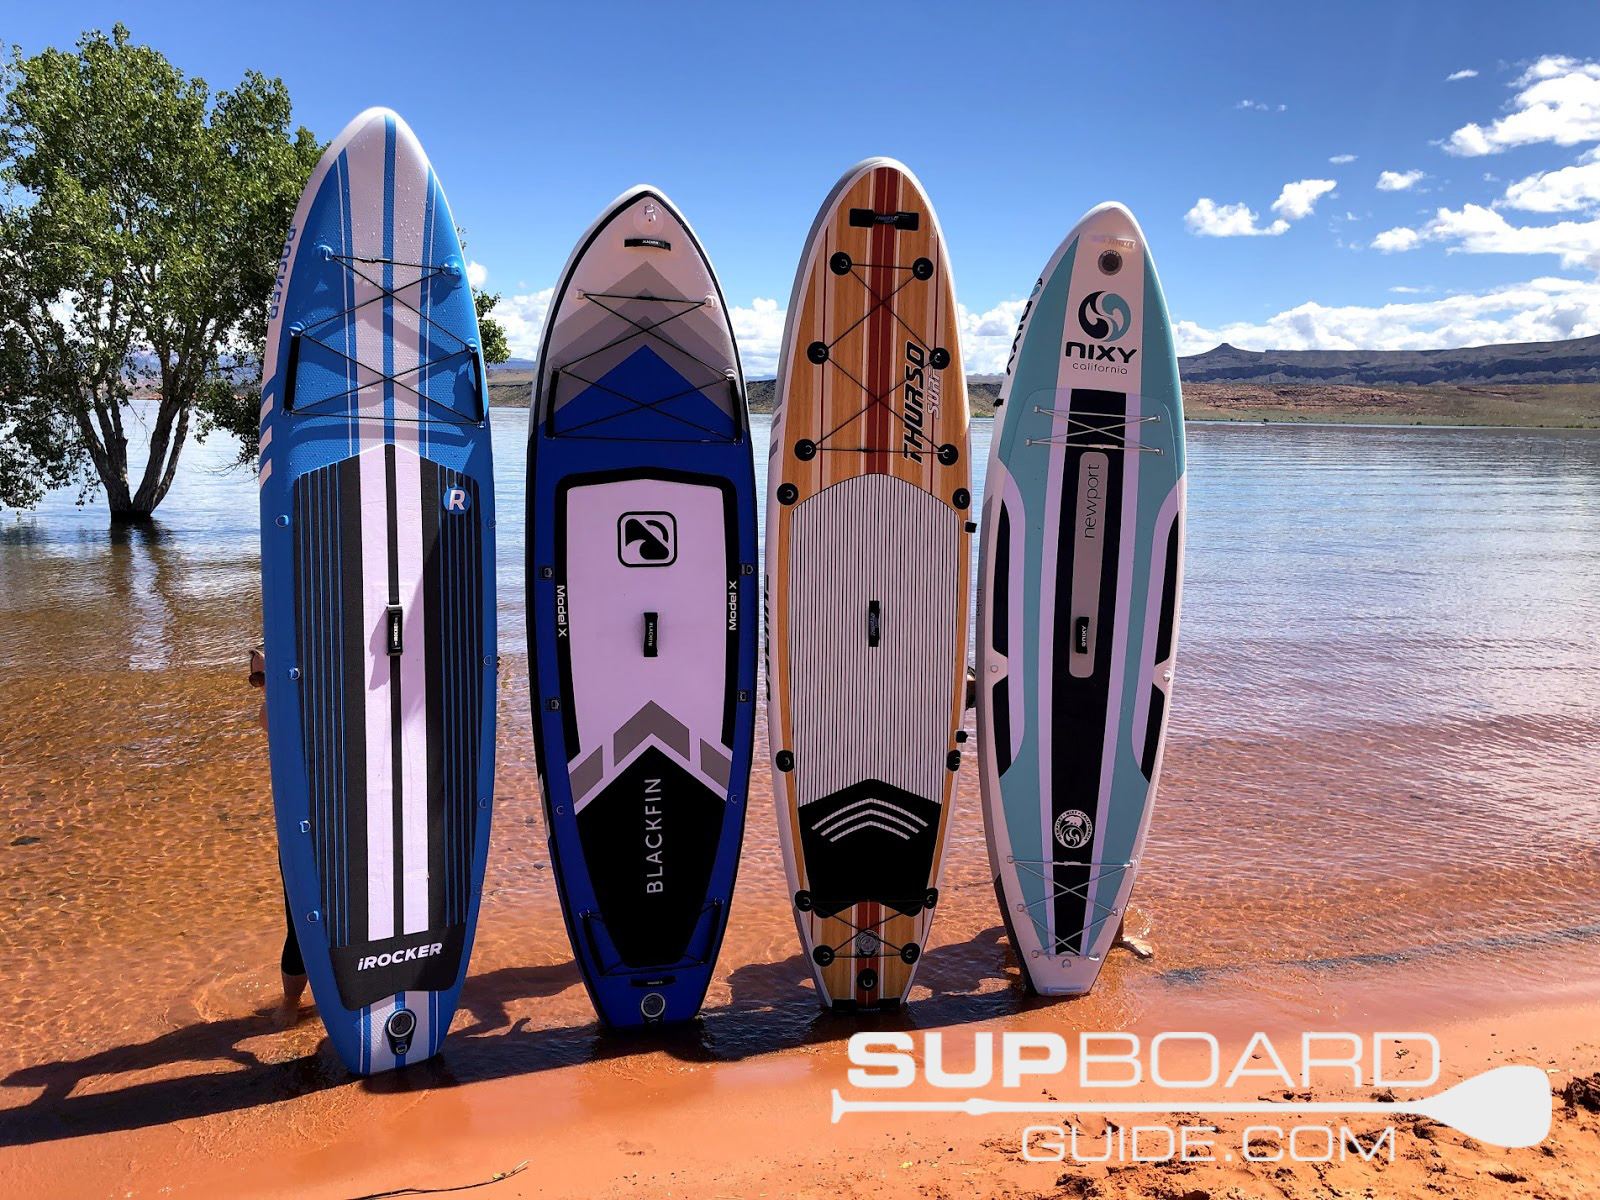 Best Paddle Boards >> The 6 Best Inflatable Blow Up Paddle Boards And Why You Will Love Them